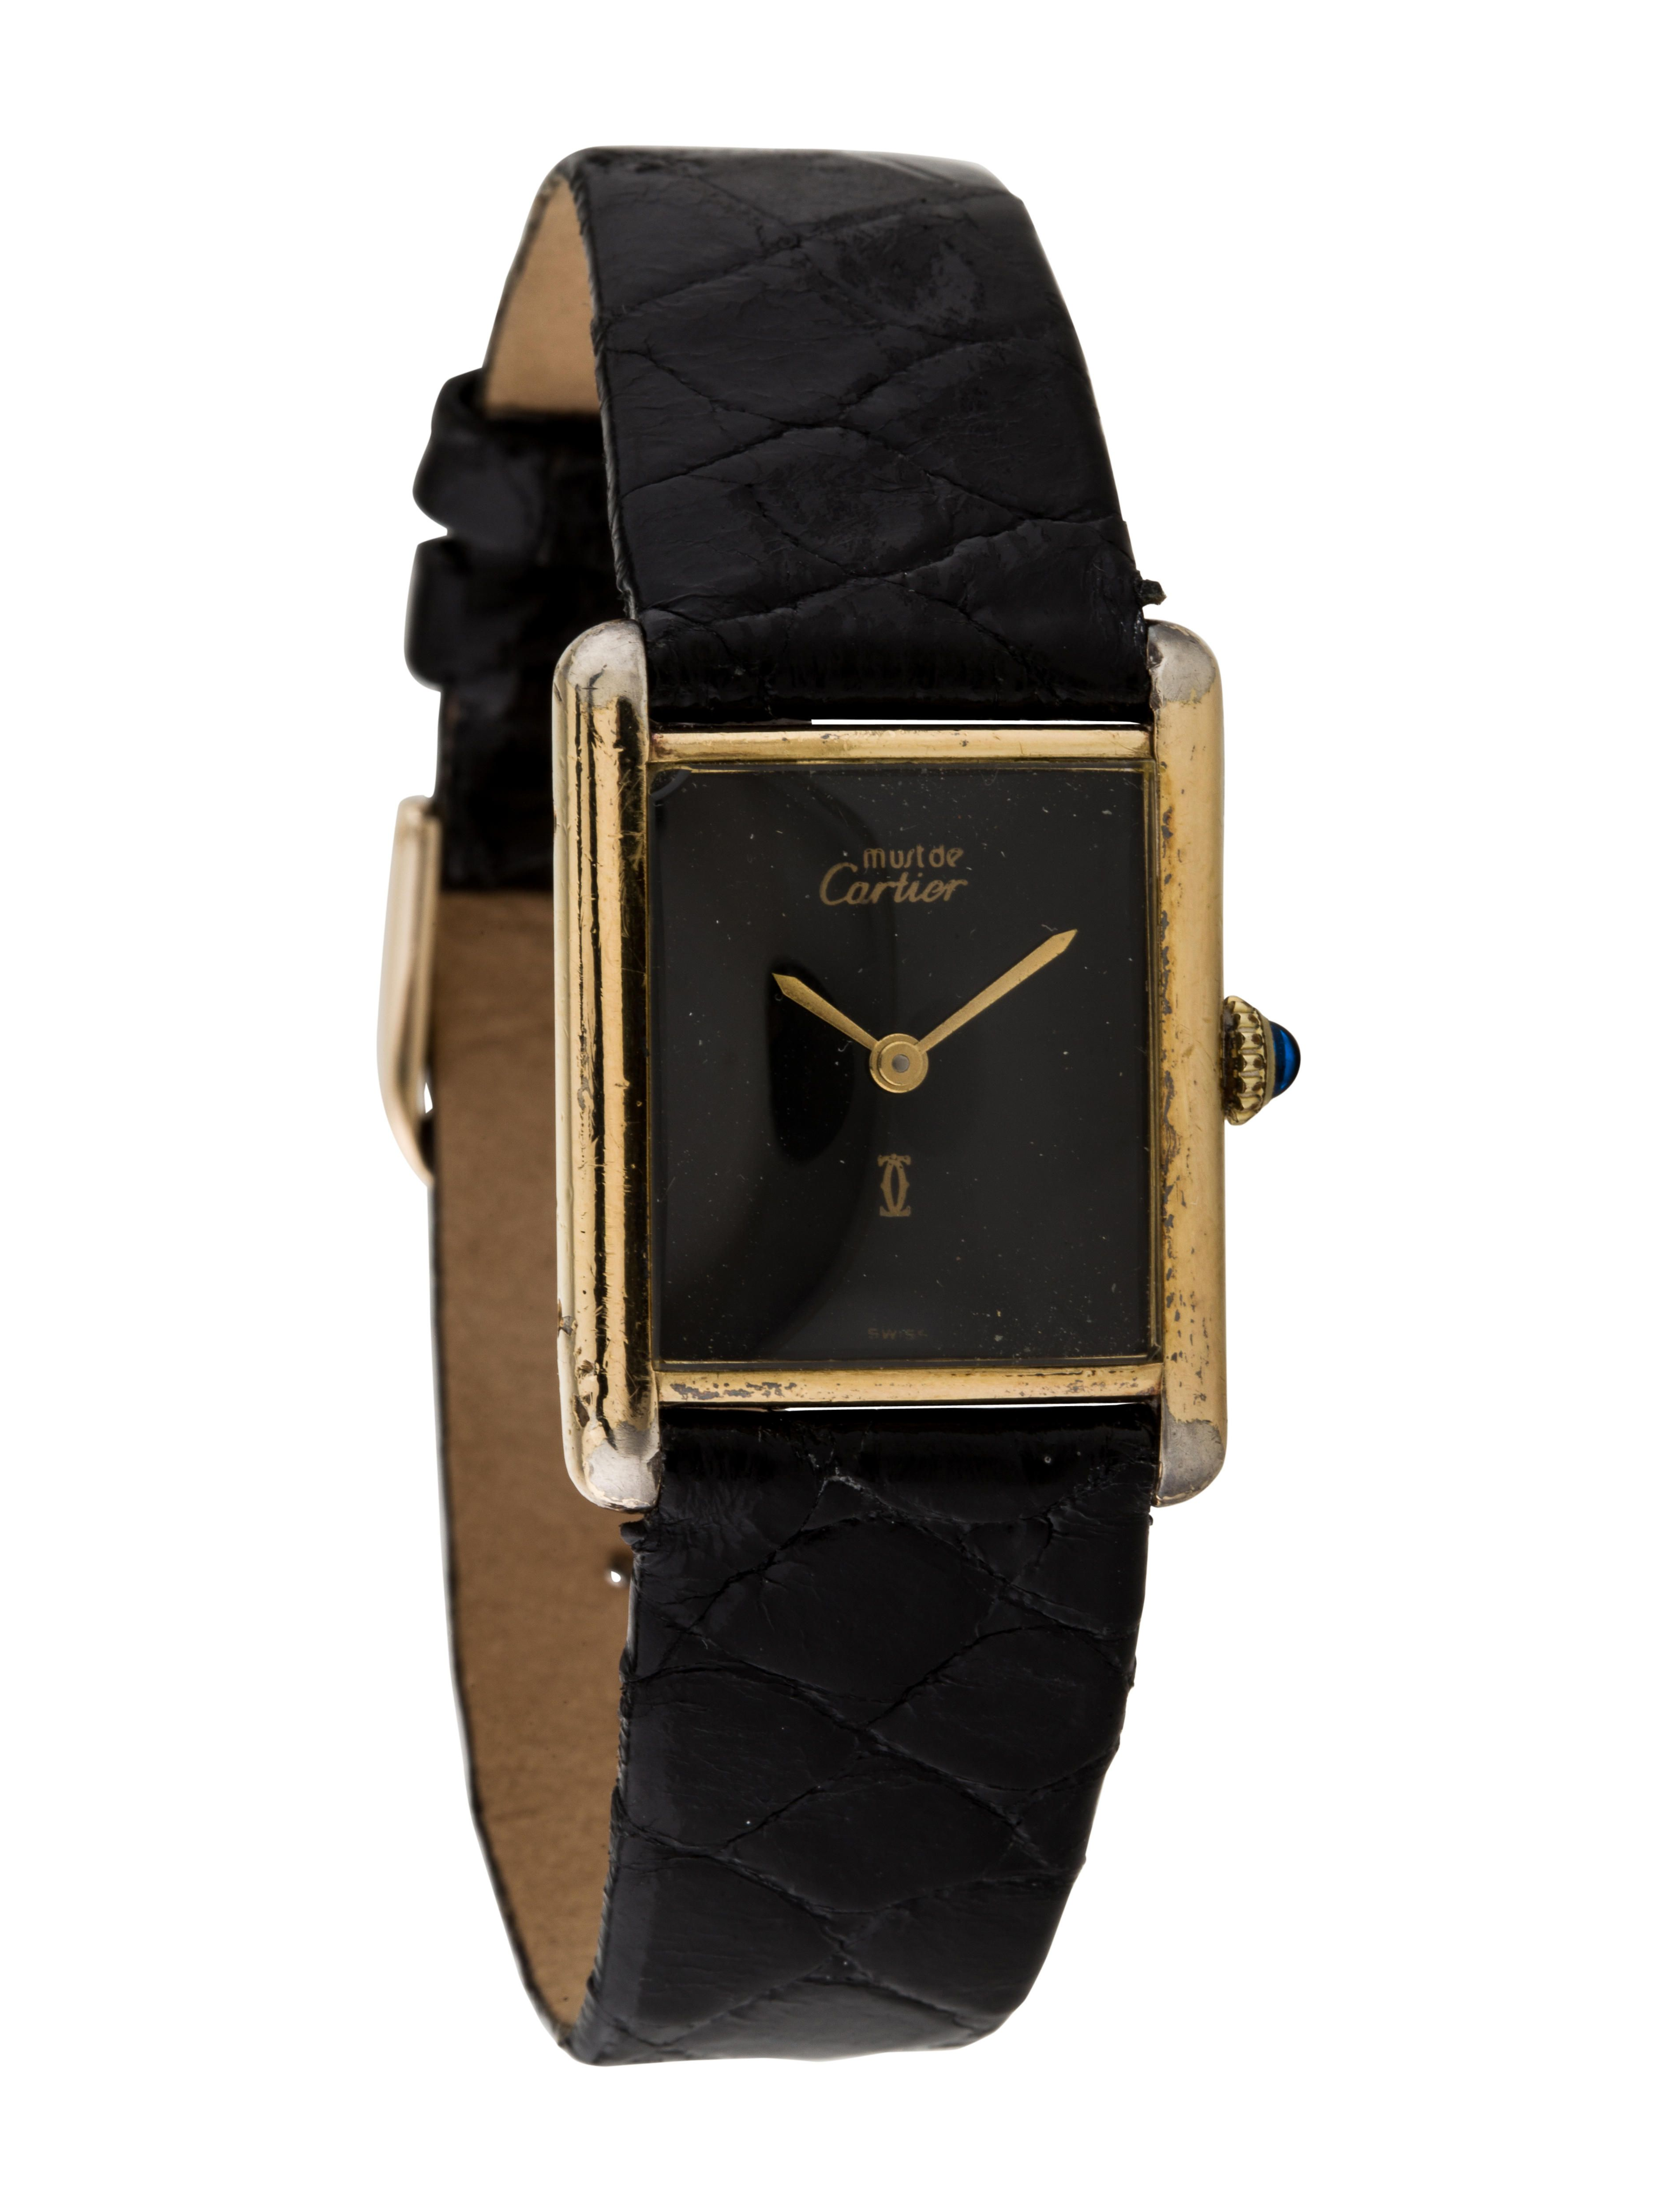 Ladies 39 Gold Plated Stainless Steel 24mm X 31mm Cartier Tank Must De Cartier Manual Wind Watch With S Must De Cartier Watch Apple Watch Bands Cartier Watch